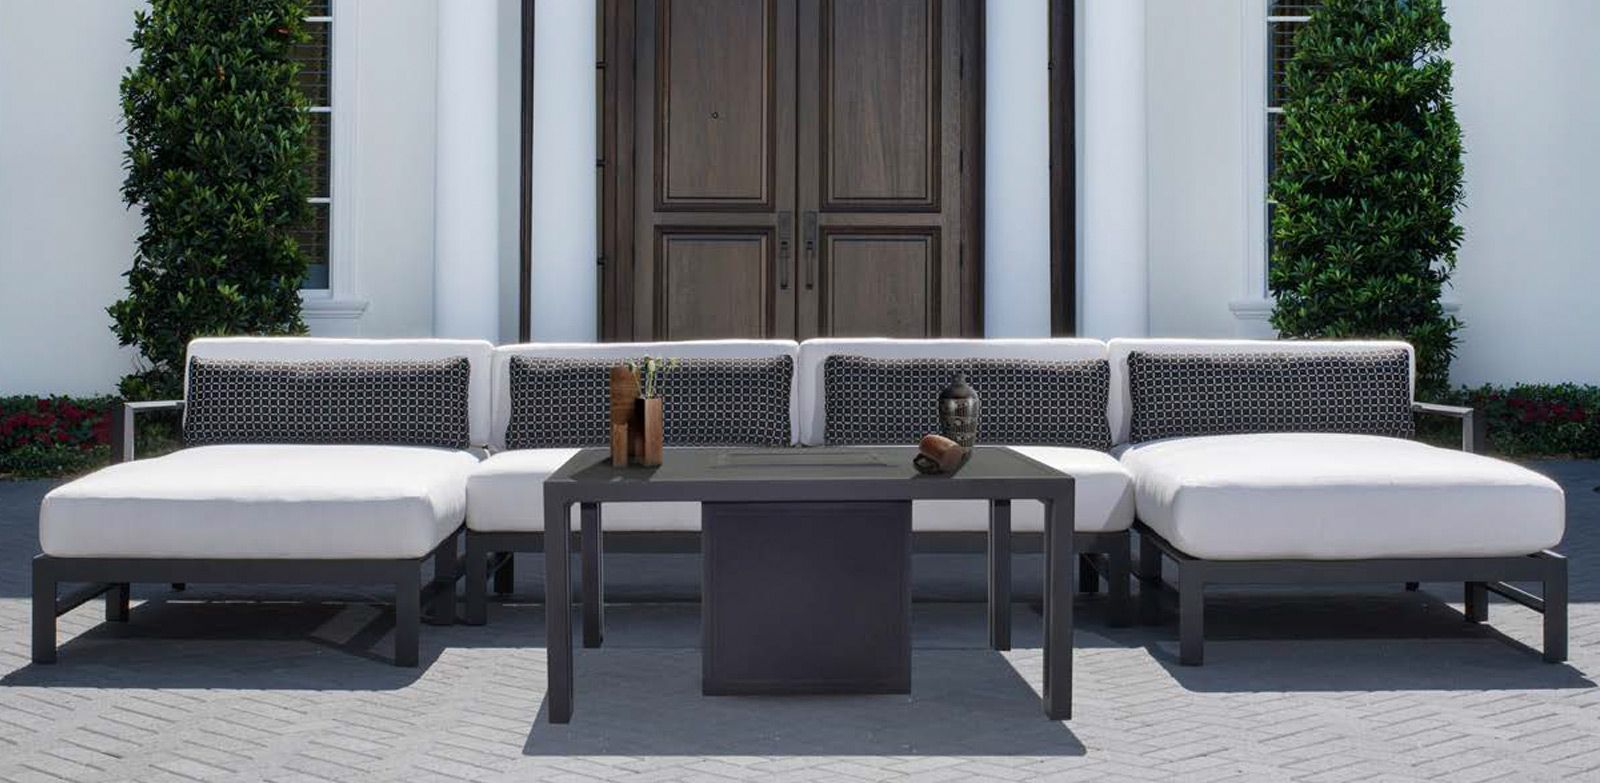 Vertice Collection Castelle Luxury Outdoor Furniture